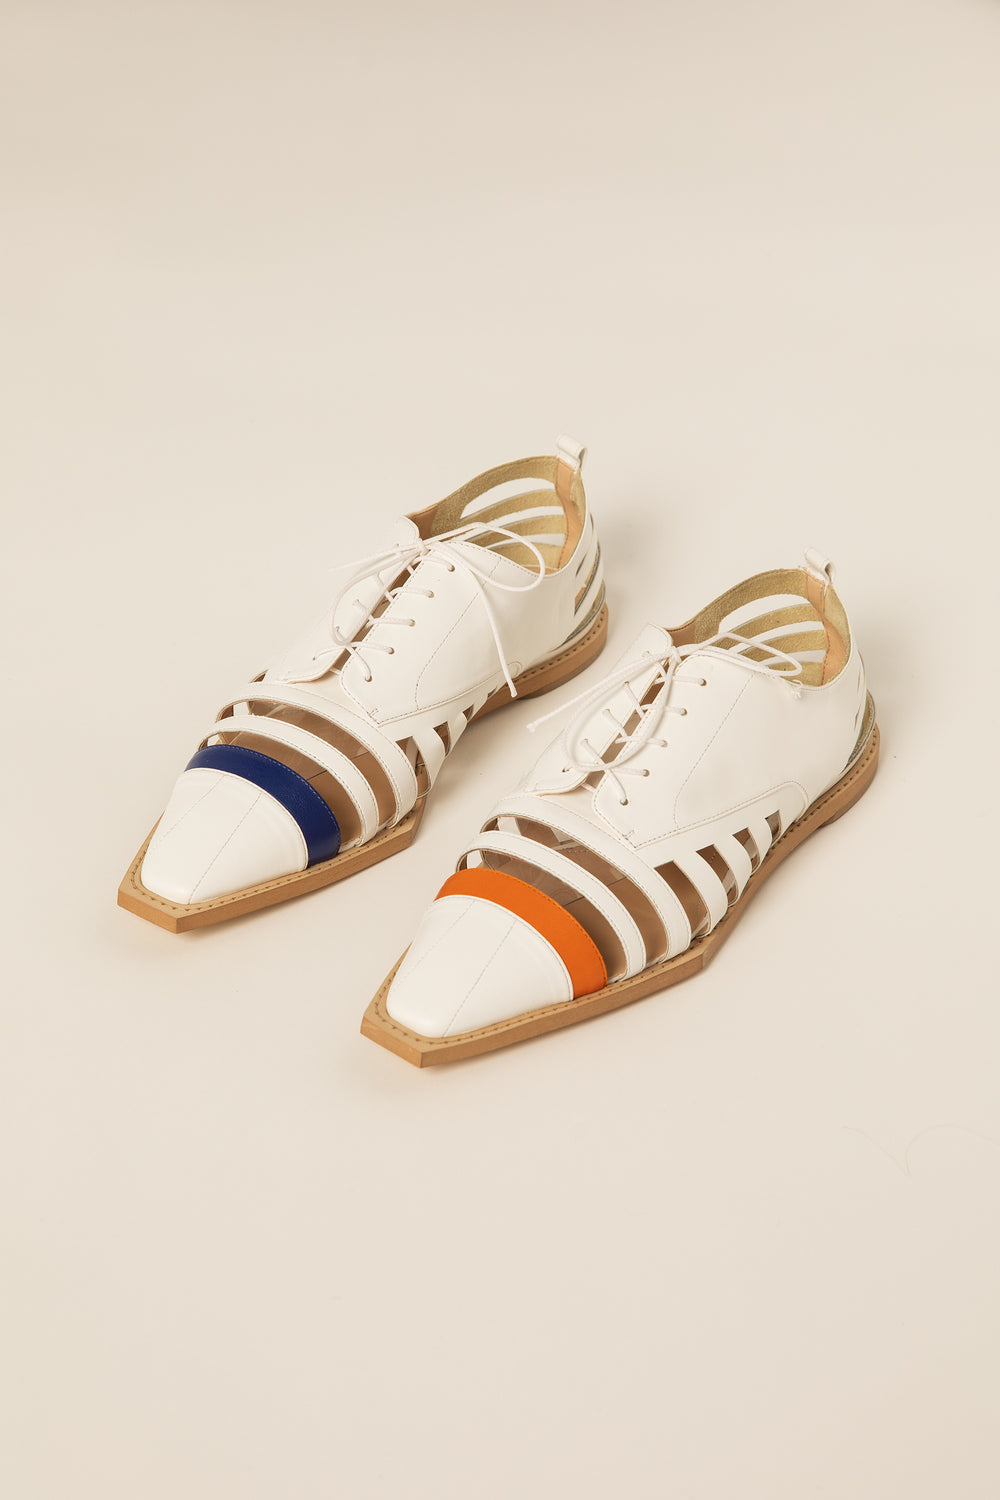 Rosie Assoulin Fall 2019 Oxford with Laser Cut Stripes. Classic oxford with cutout stripes. Adjustable laces. Square toe. Black. Sizes 35 - 41.